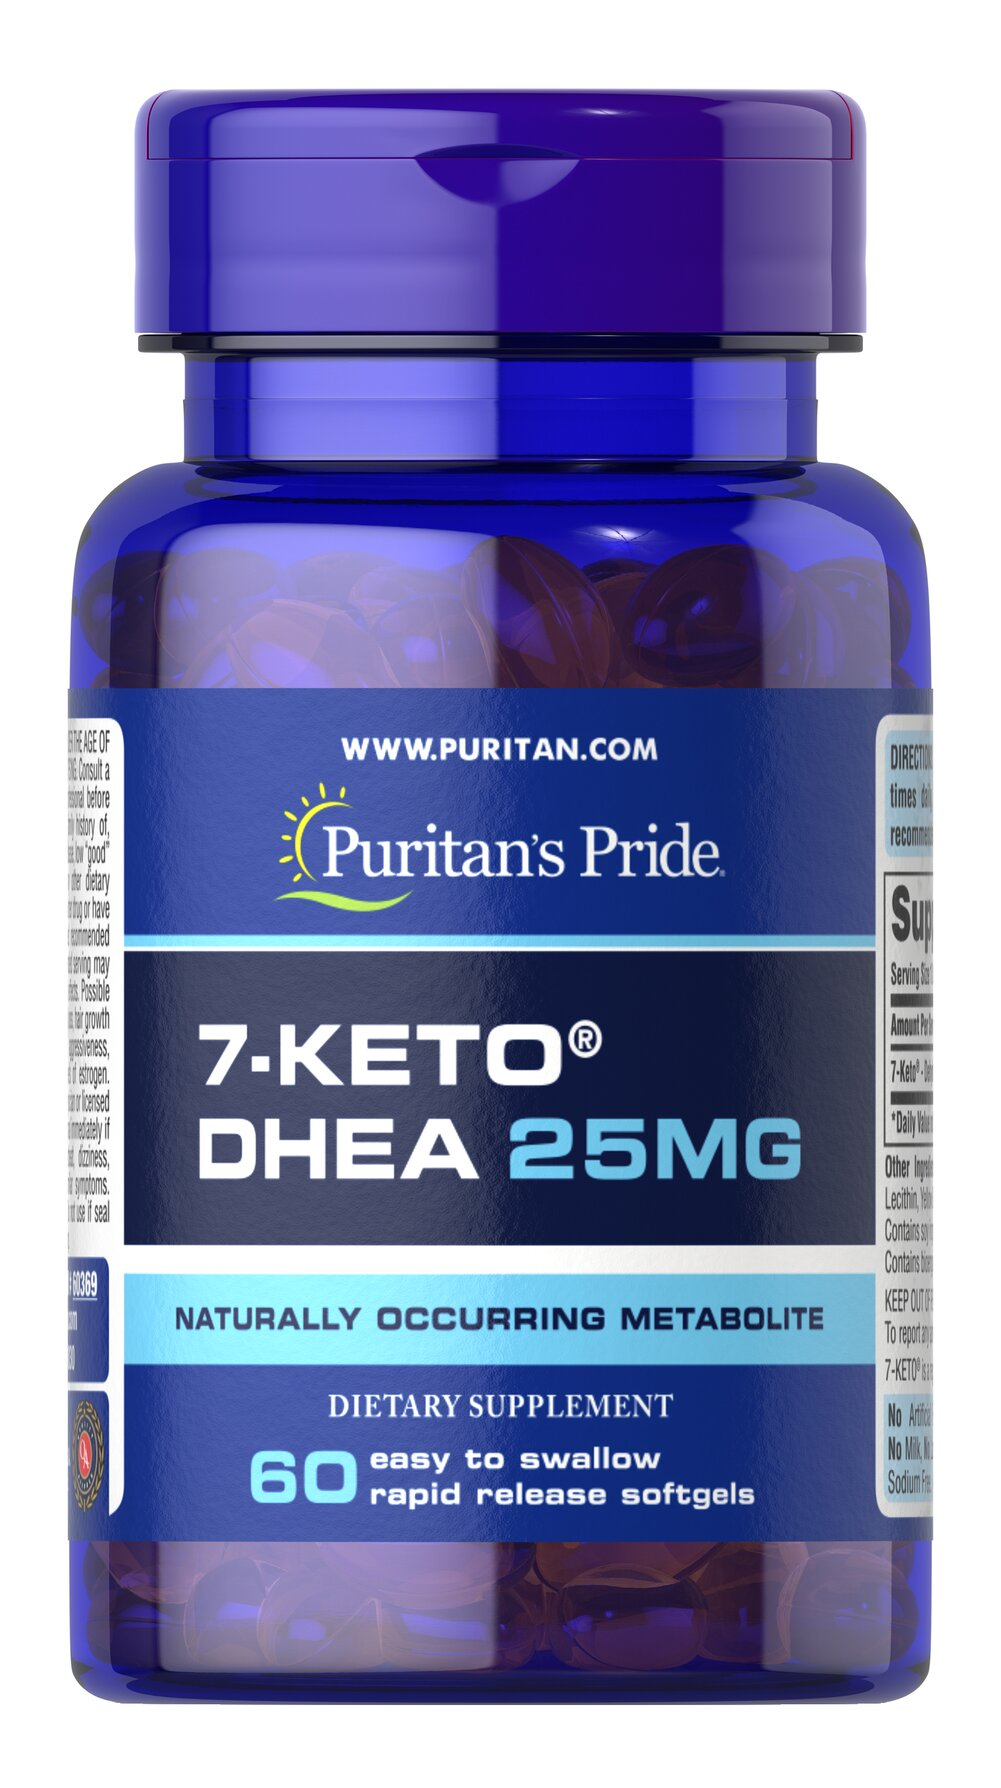 7-Keto™ DHEA 25 mg Thumbnail Alternate Bottle View